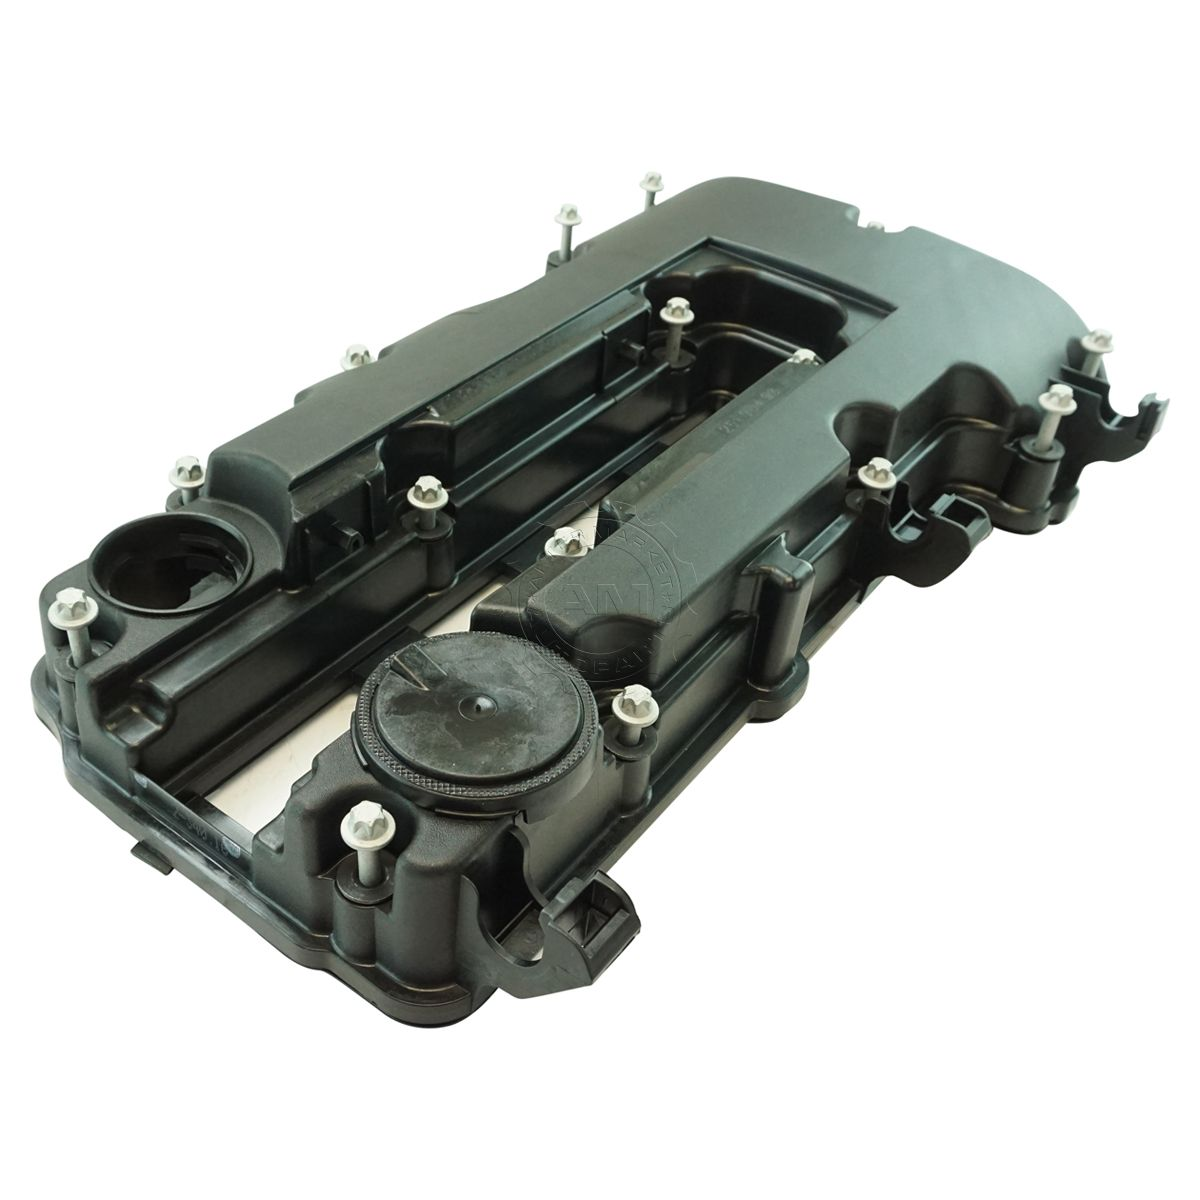 Details about OEM Camshaft Valve Cover w/ Bolts & Seal for Chevy Cruze  Sonic Volt Trax 1 4L